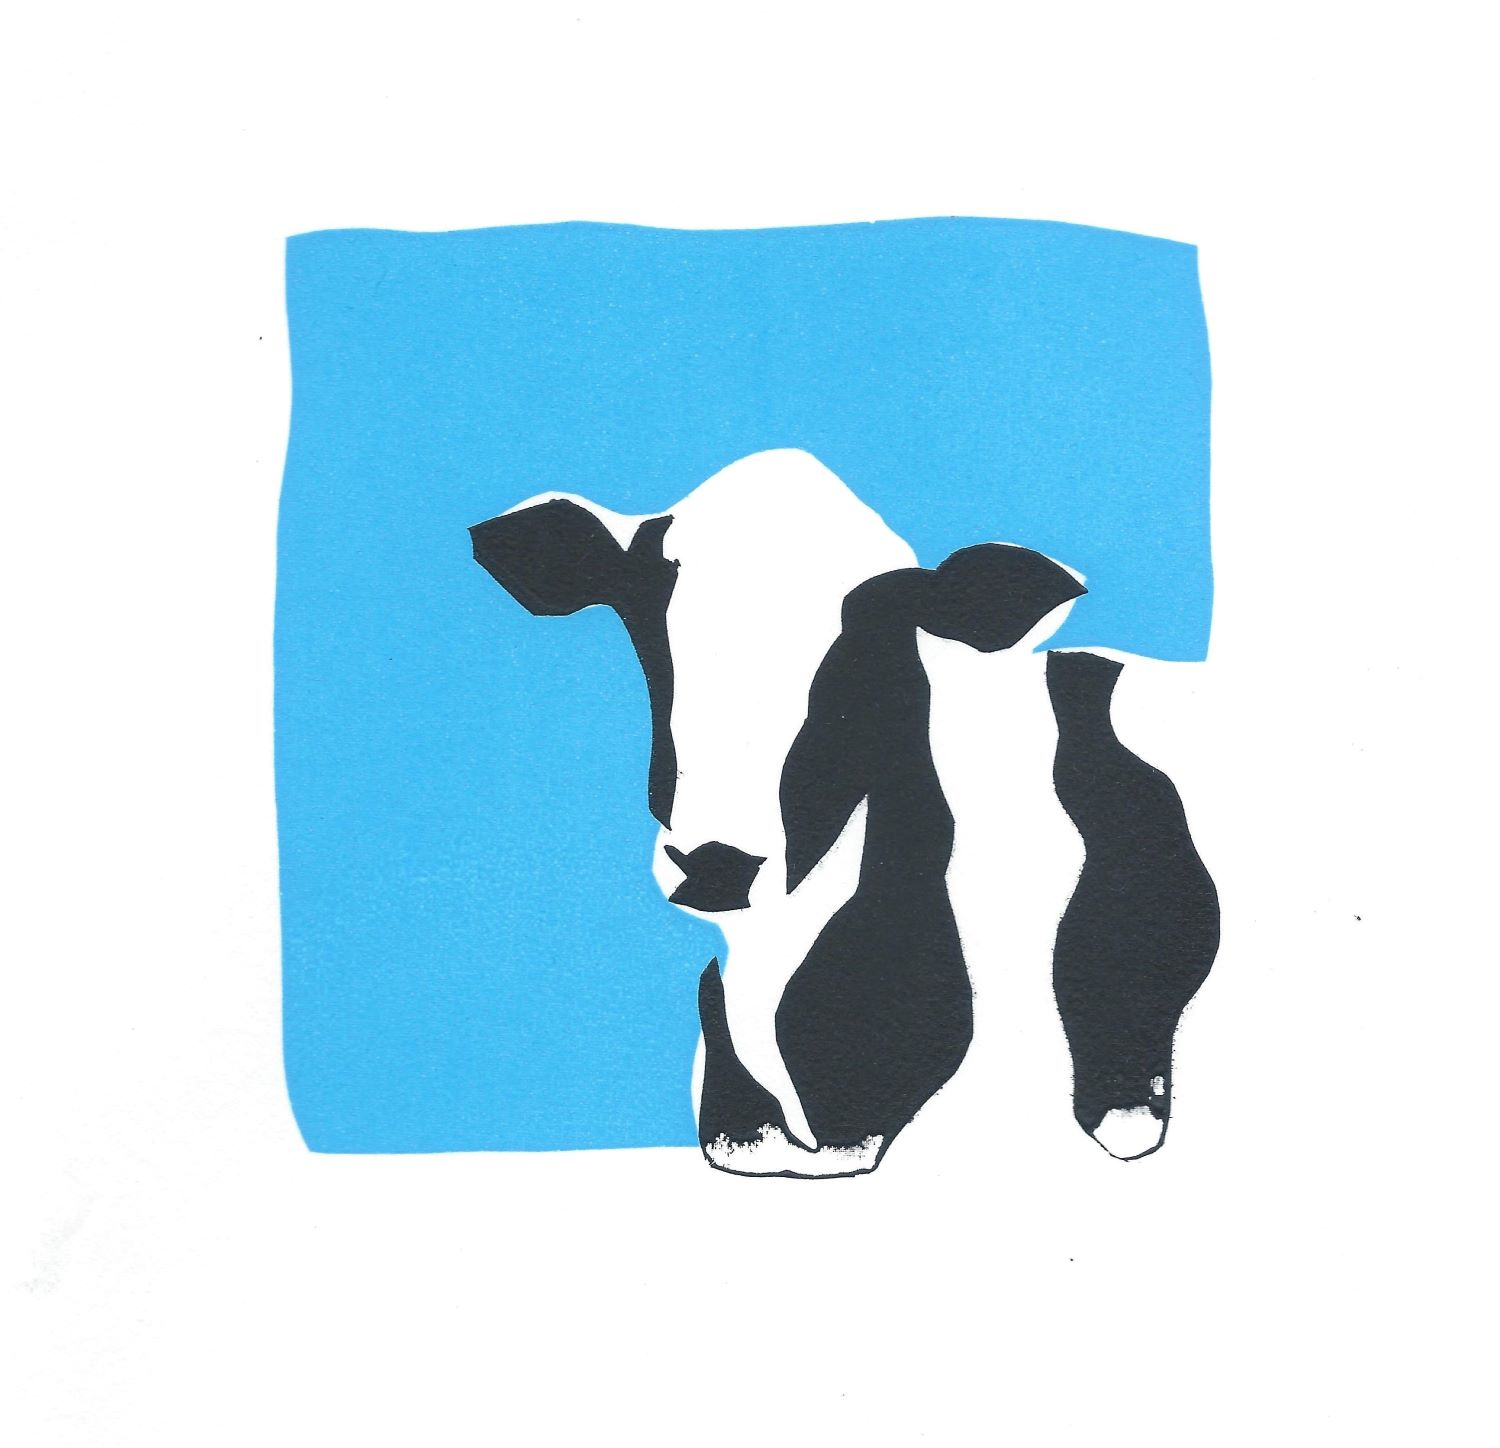 Screenprint of black and white cow on blue background